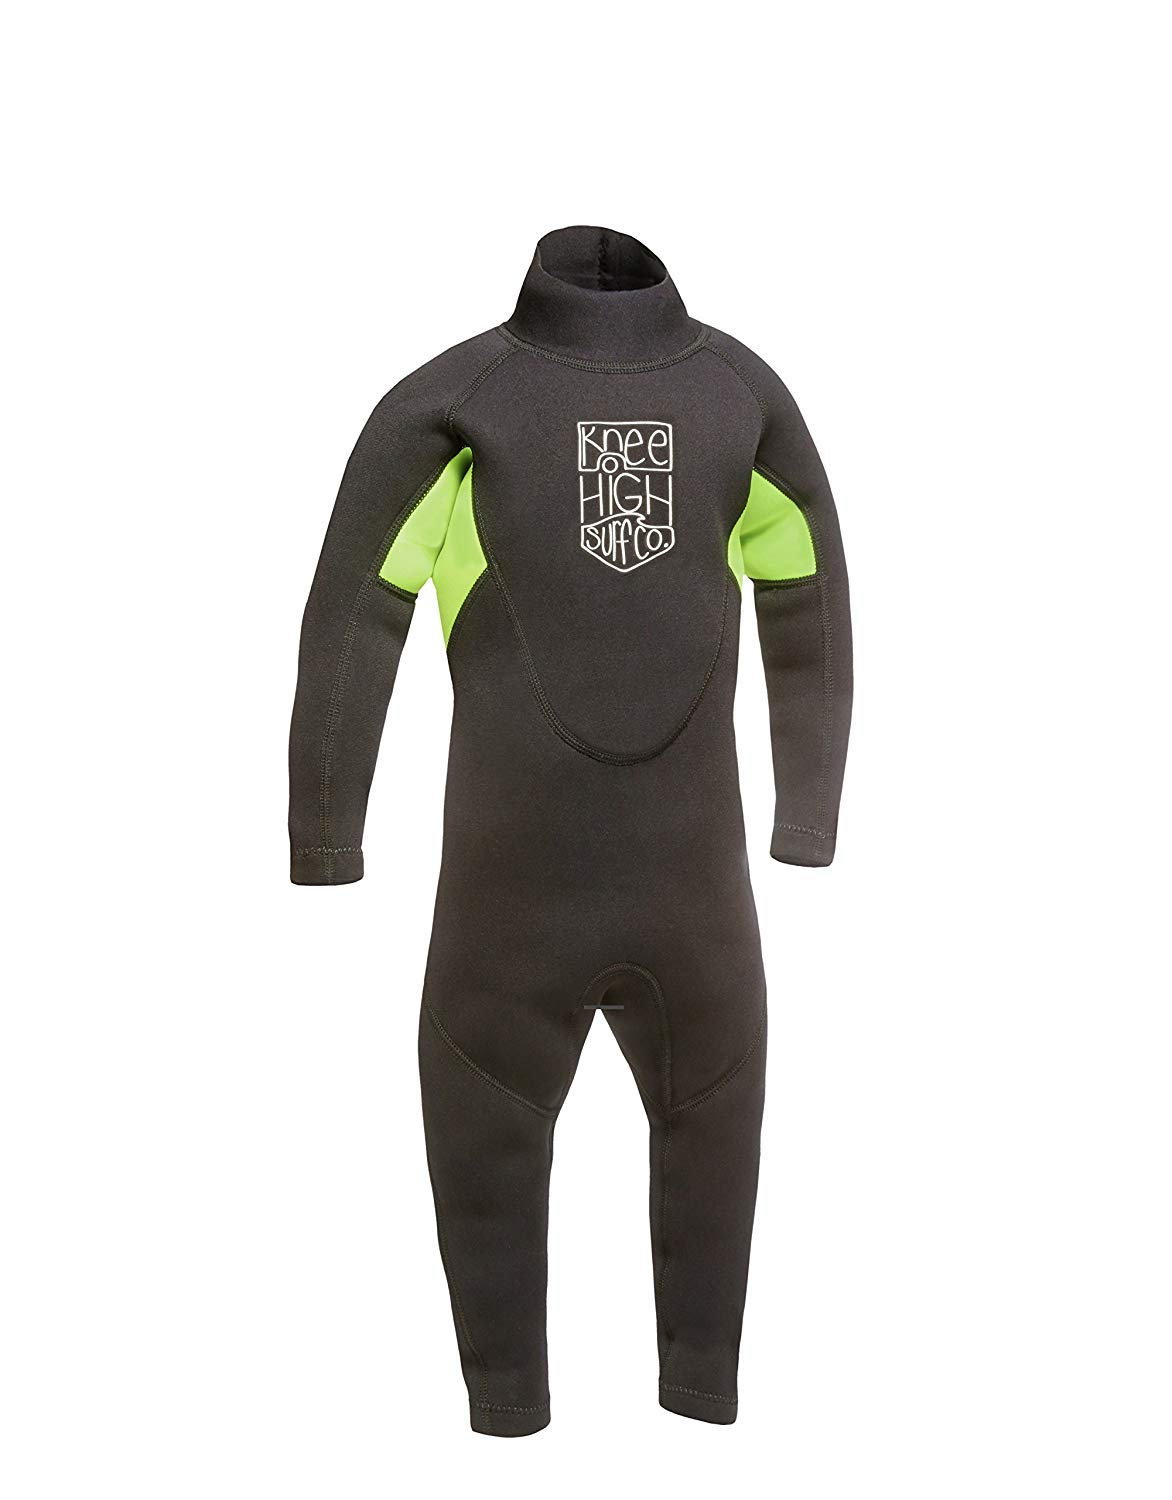 Knee High Surf Co. Kids Wetsuit Full Suit for Infant Toddler and Baby (X-Small-3mm)